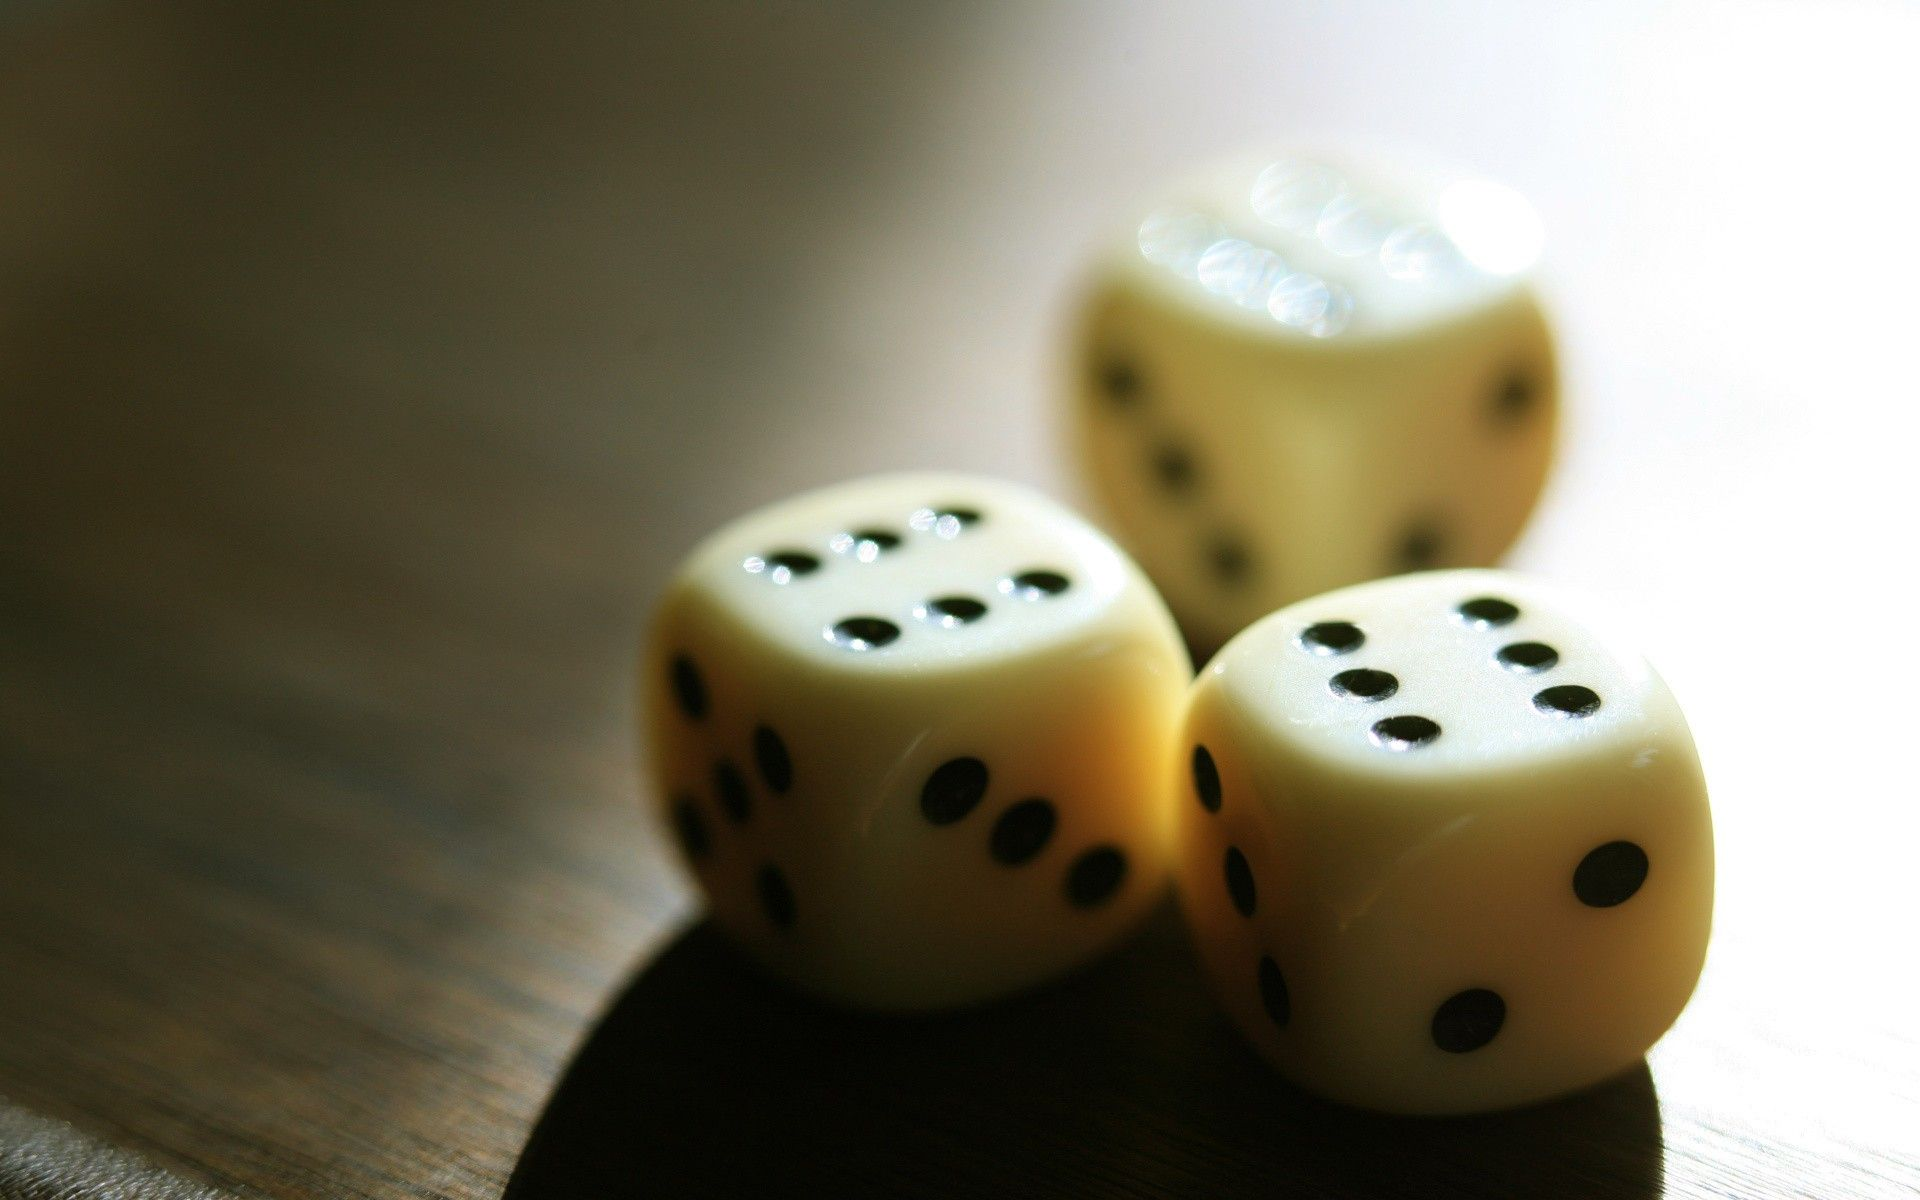 images of dice